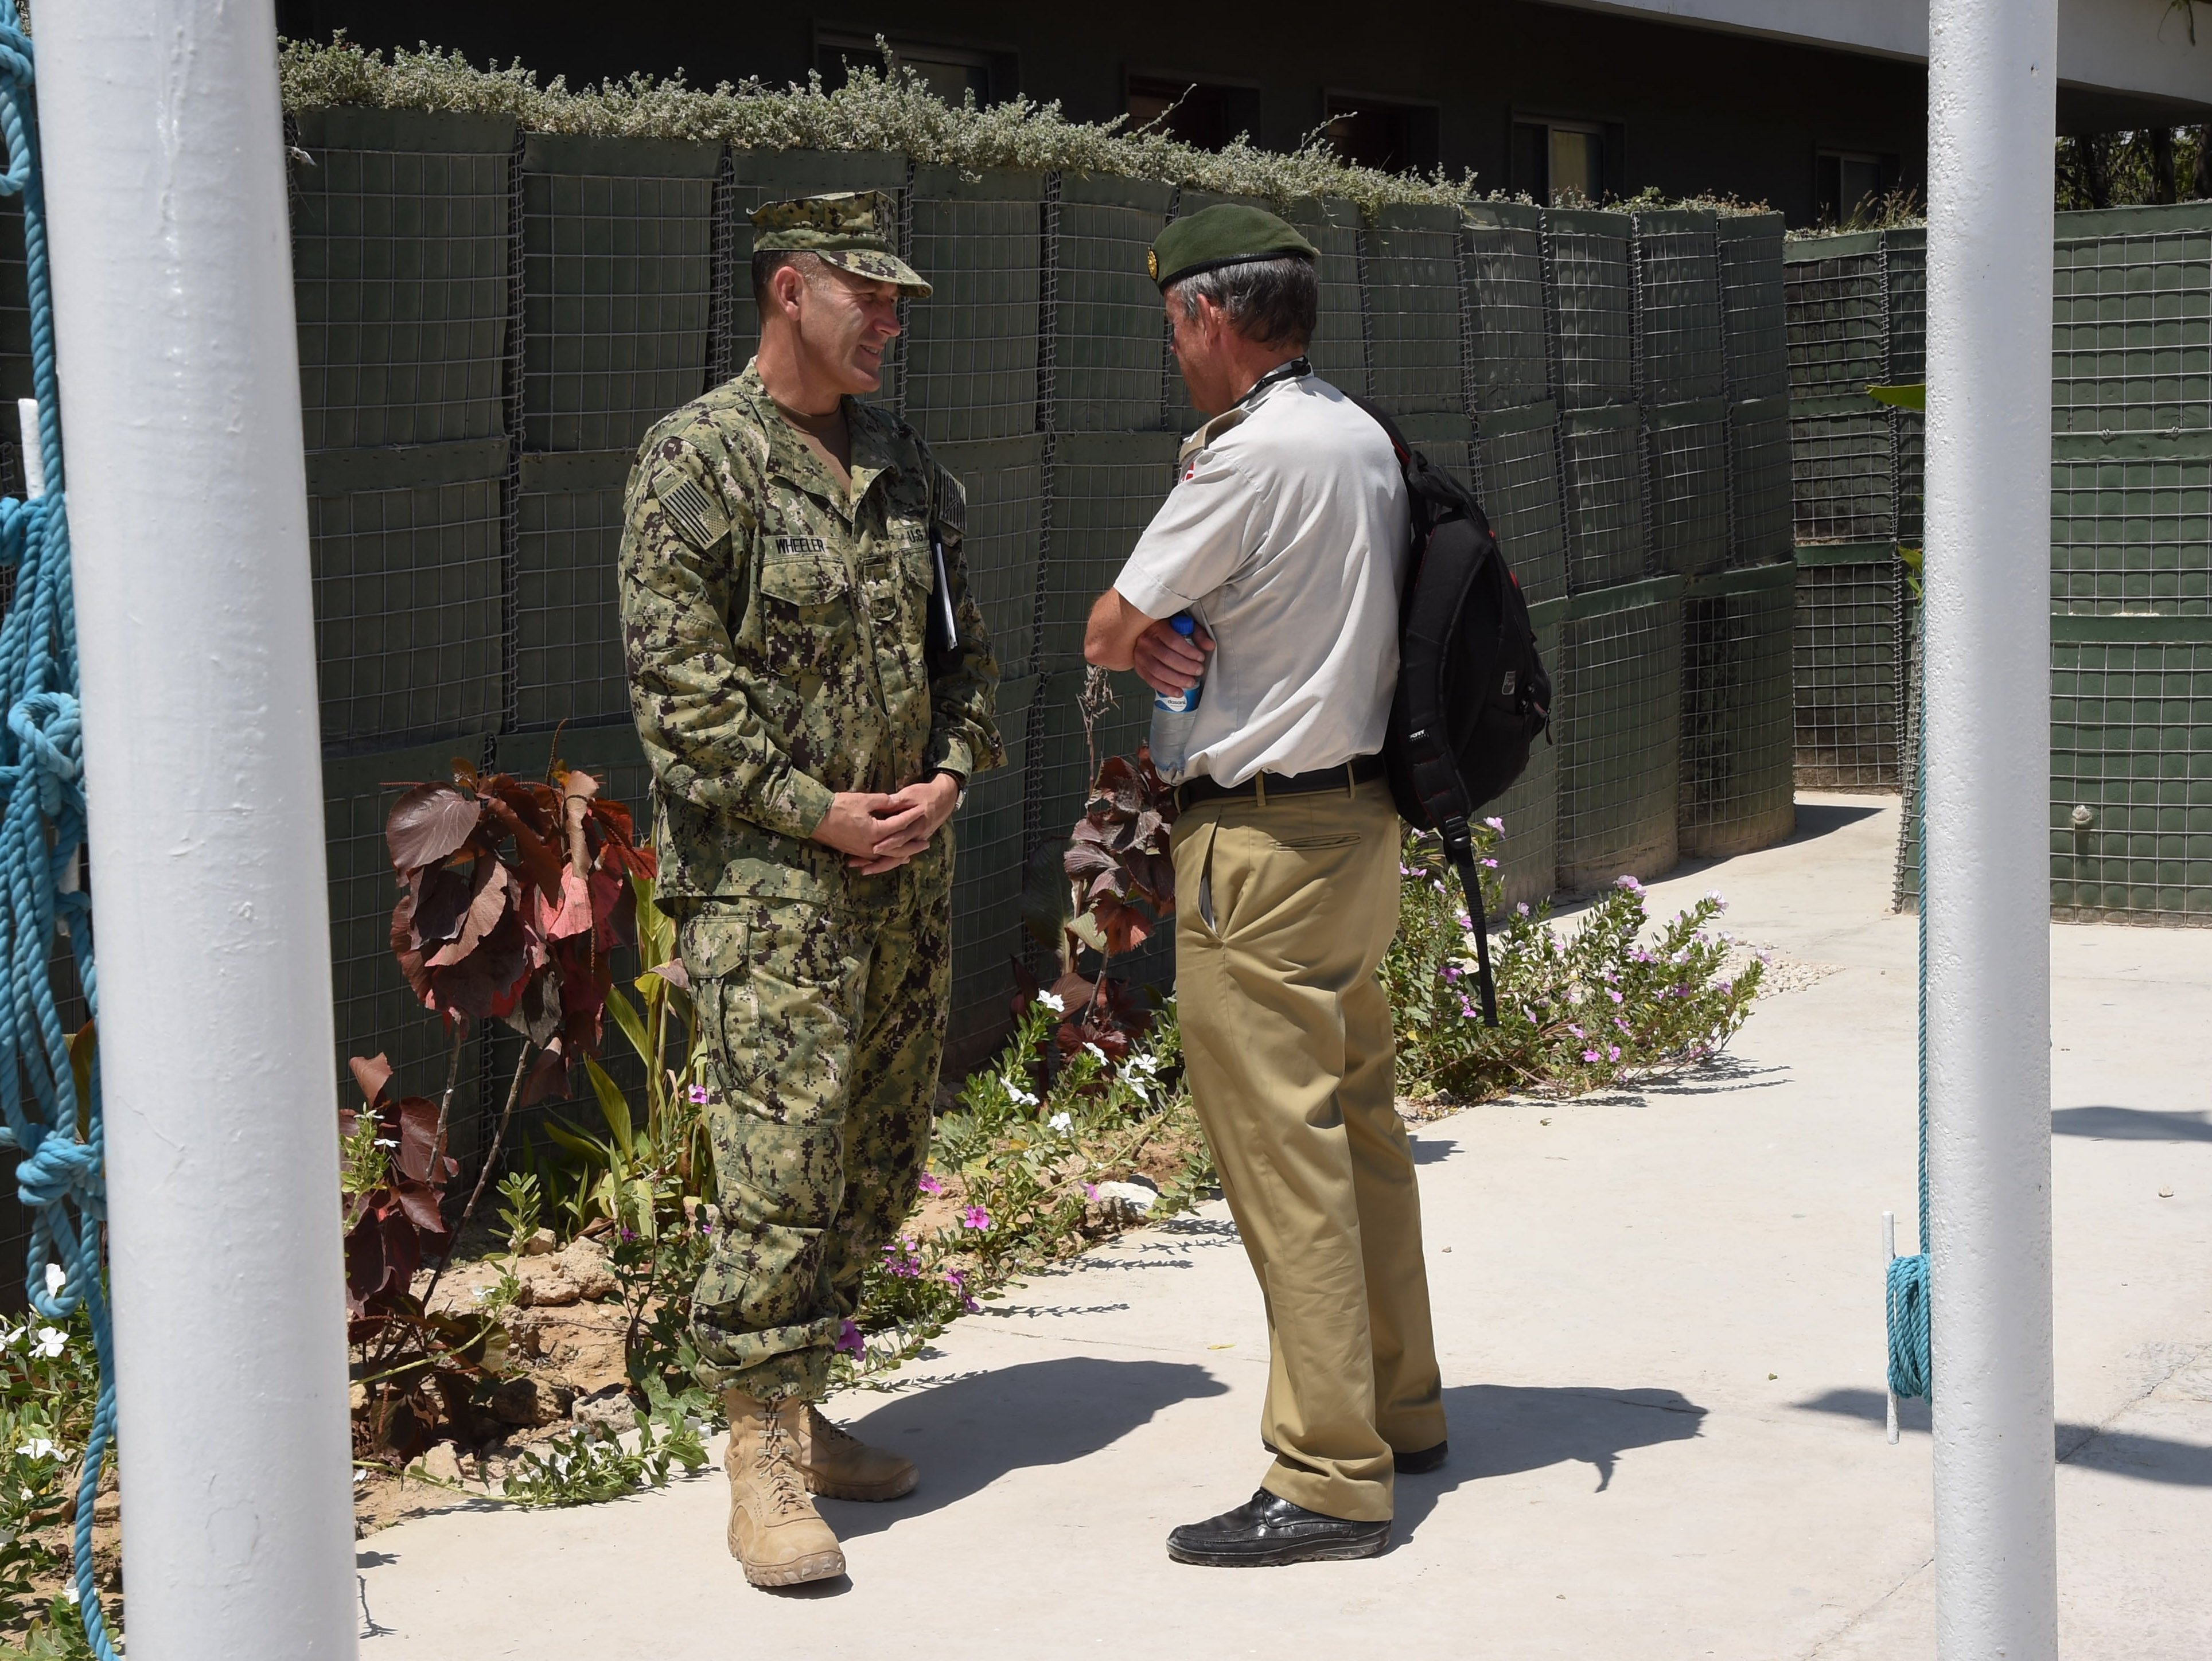 U.S. Navy Rear Adm. William Wheeler III, deputy commander of Combined Joint Task Force-Horn of Africa (CJTF-HOA), and Col. Søren Knudsen, Military Advisor to the Royal Danish Embassy and Defense Attaché Kenya, Nairobi, converse after a defense steering committee meeting, Nov. 3, 2016, in Mogadishu, Somalia. The venue allowed members to discuss Somalian defense security situations, AMISOM challenges, and the current dynamics seen by all sides. These meetings align with the CJTF-HOA mission of supporting and enabling the stabilization of Somalia. (U.S. Air Force photo by Staff Sgt. Penny Snoozy)